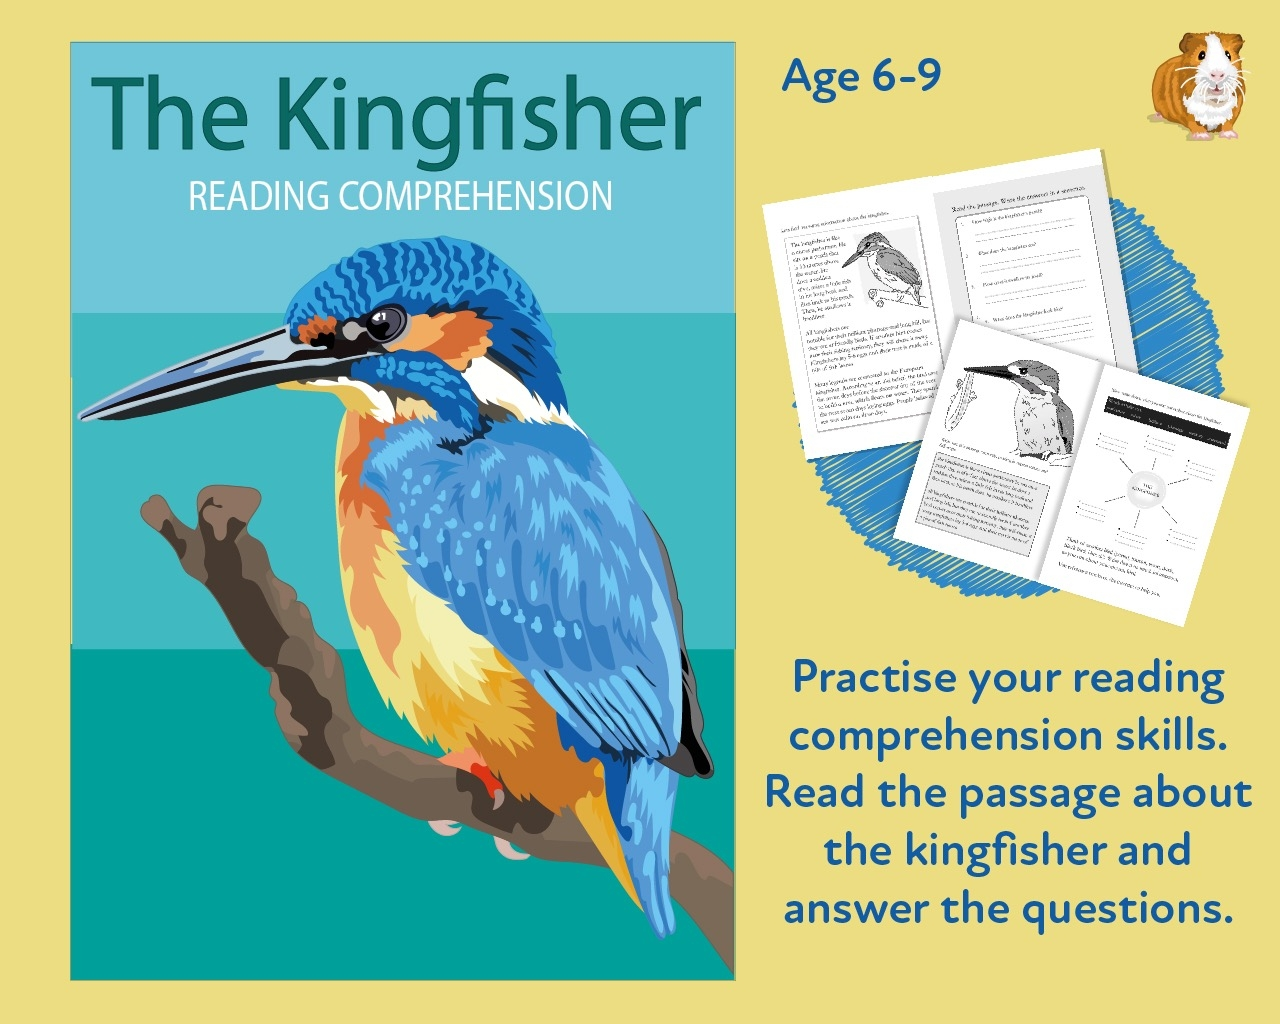 - Let's Practise Our Reading Comprehension: The Kingfisher (6-9